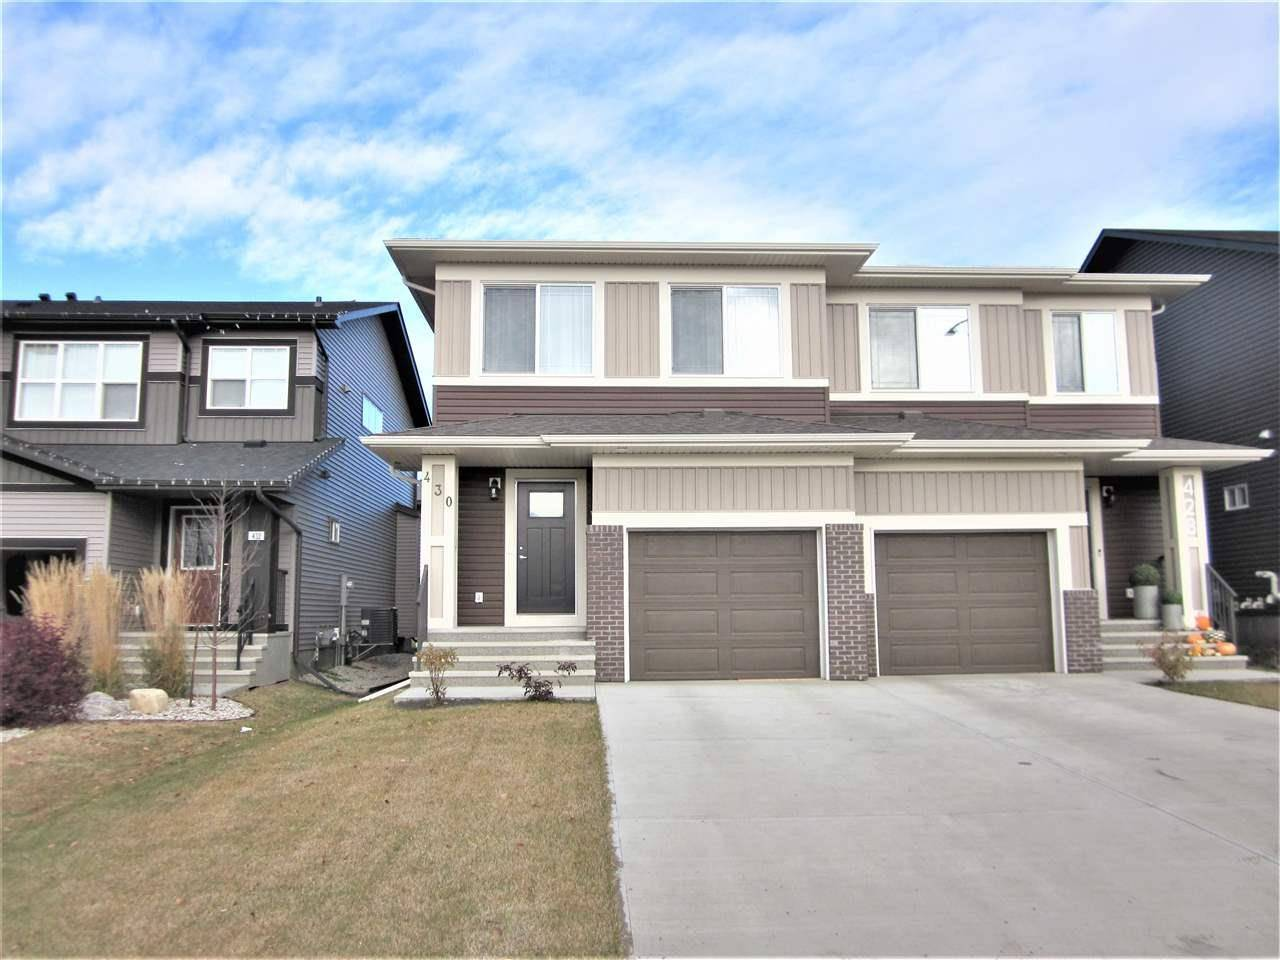 Townhouse for sale at 430 Crystallina Nera Dr Nw Edmonton Alberta - MLS: E4178165